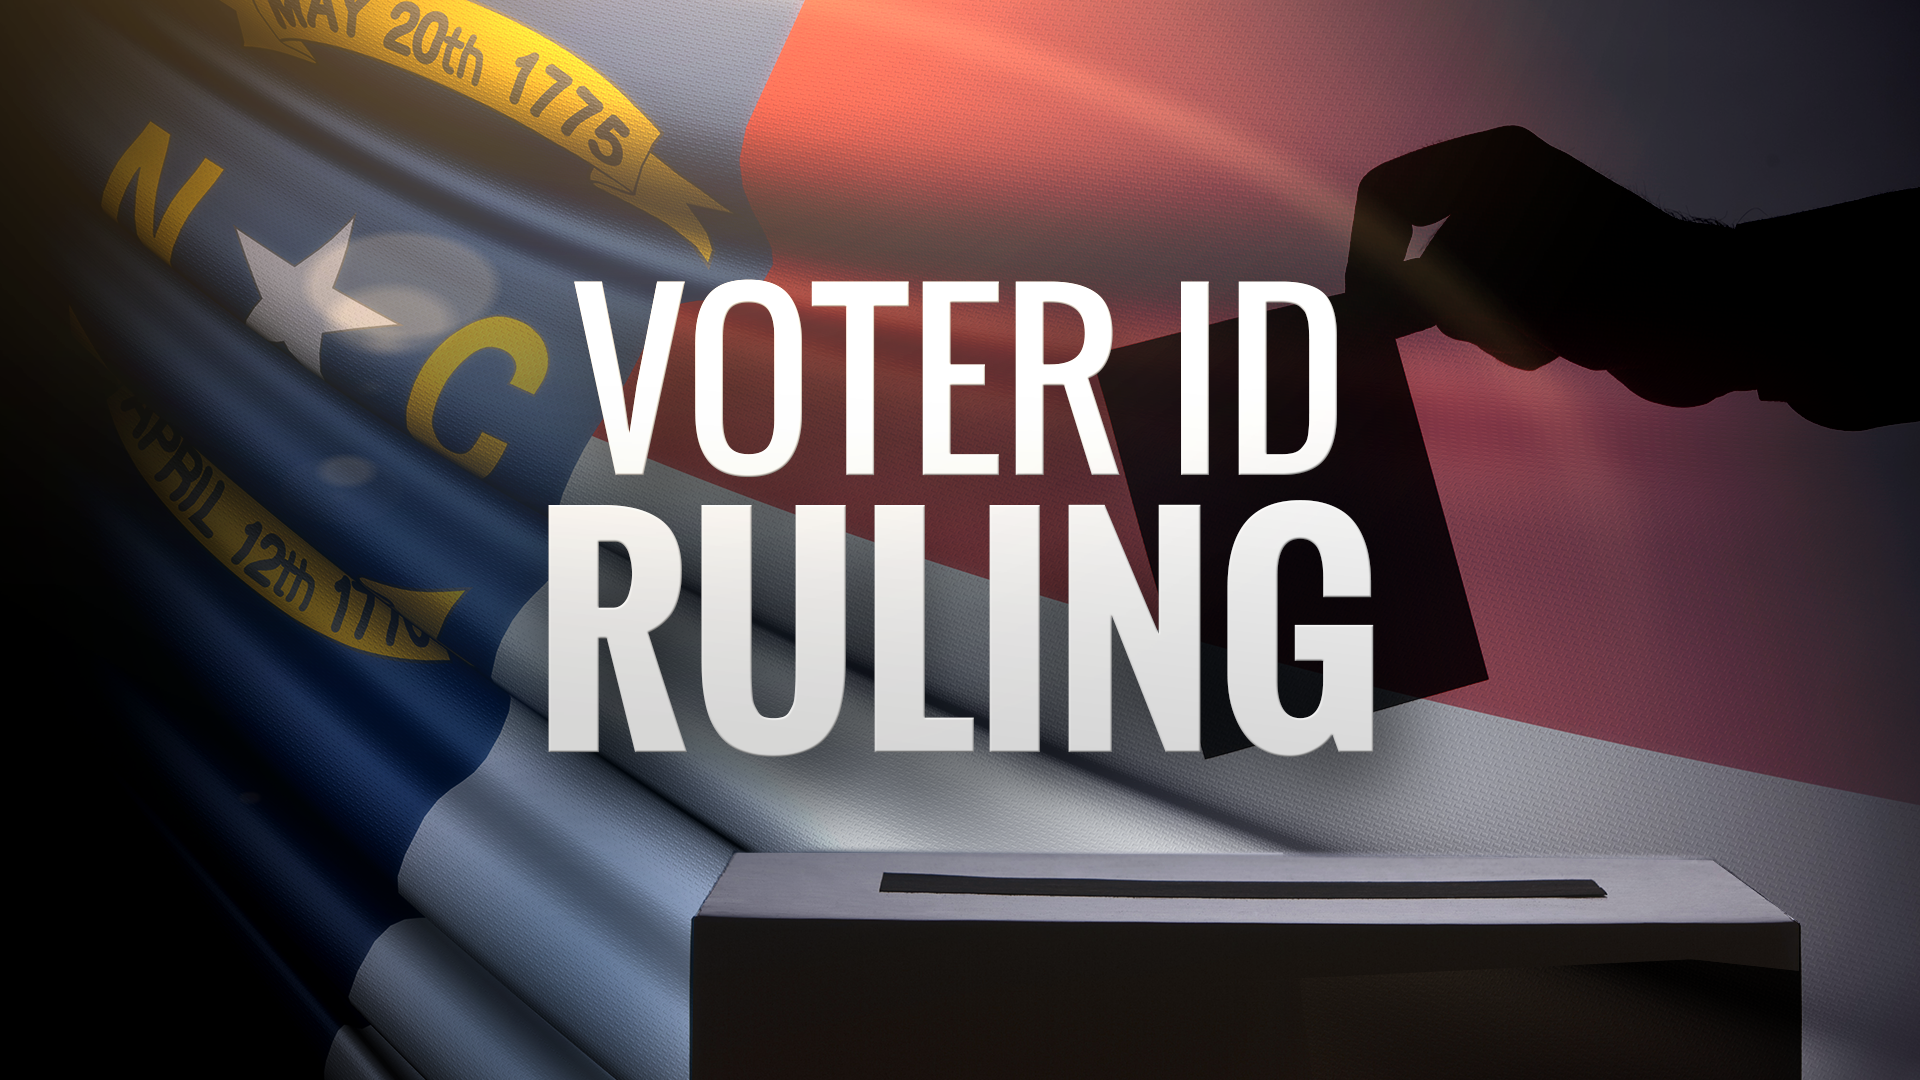 Supreme Court's Roberts: 'Uncertainty' sinks voter ID appeal